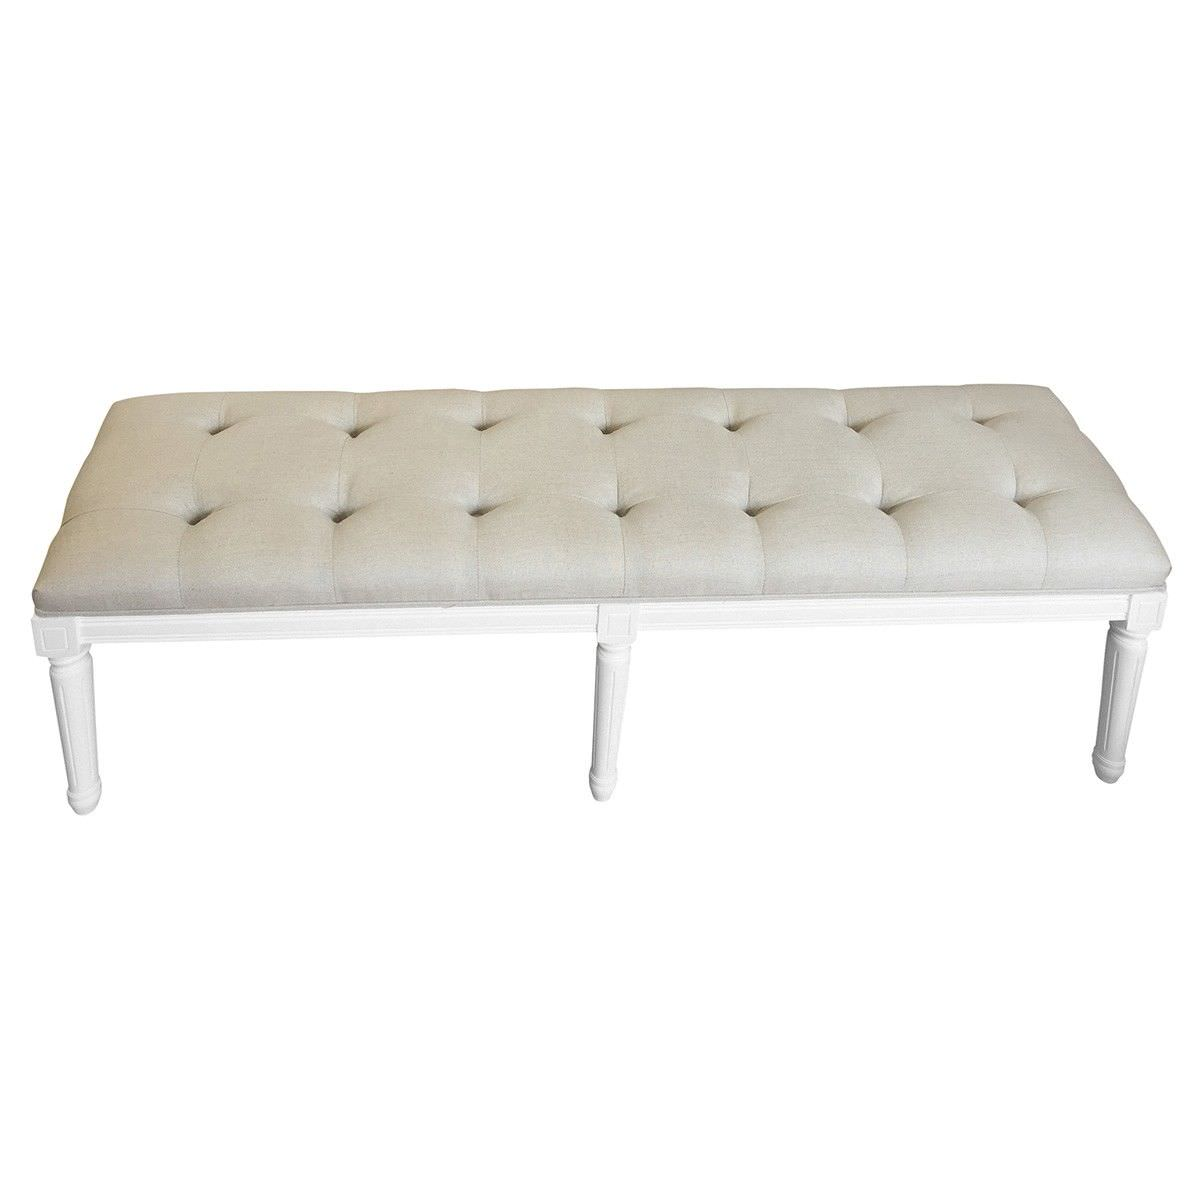 Antoinette Oak Timber Bench with Tufted Linen Seat, 160cm, White / Oatmeal